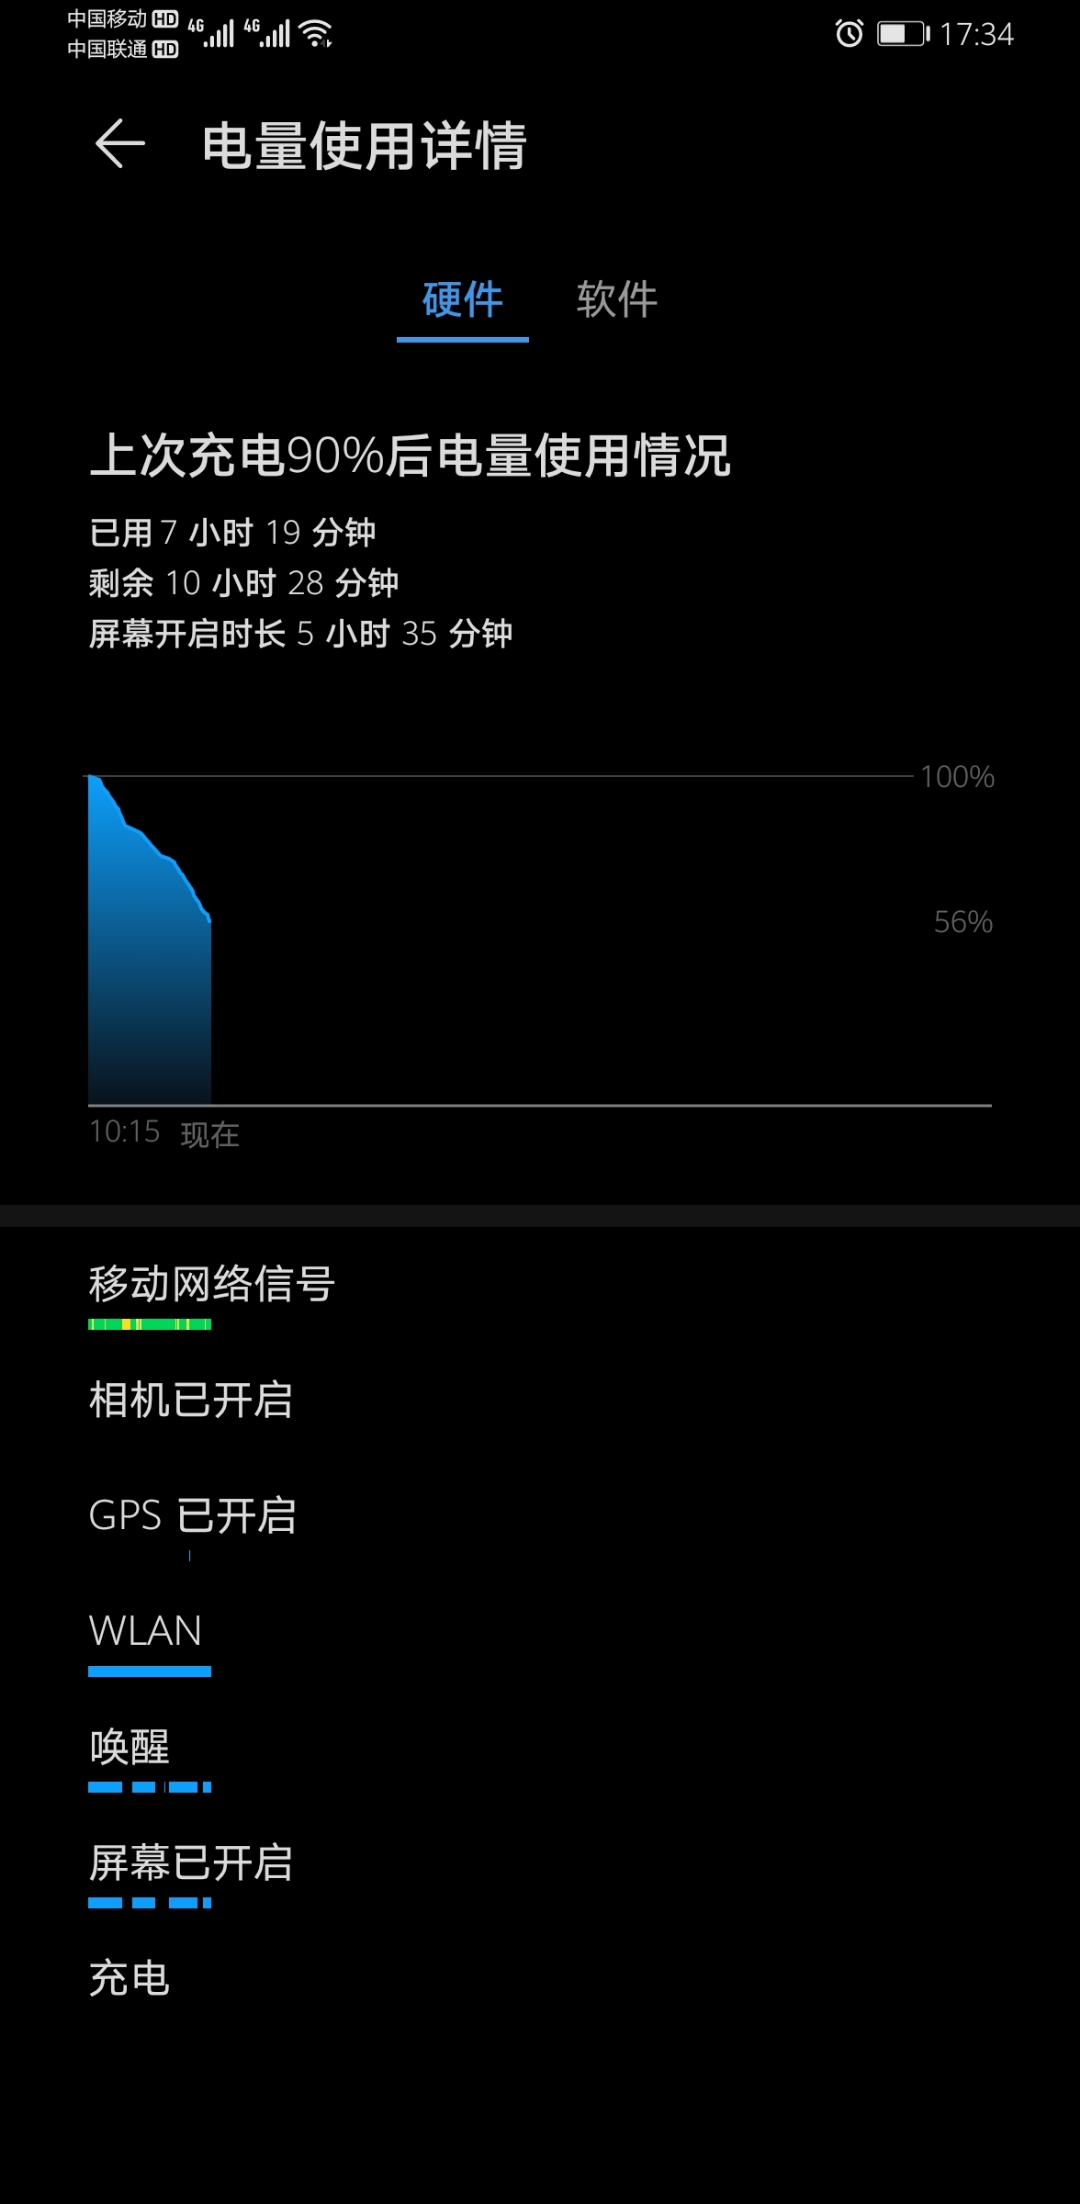 Screenshot_20200516_173442_com.huawei.systemmanager.jpg